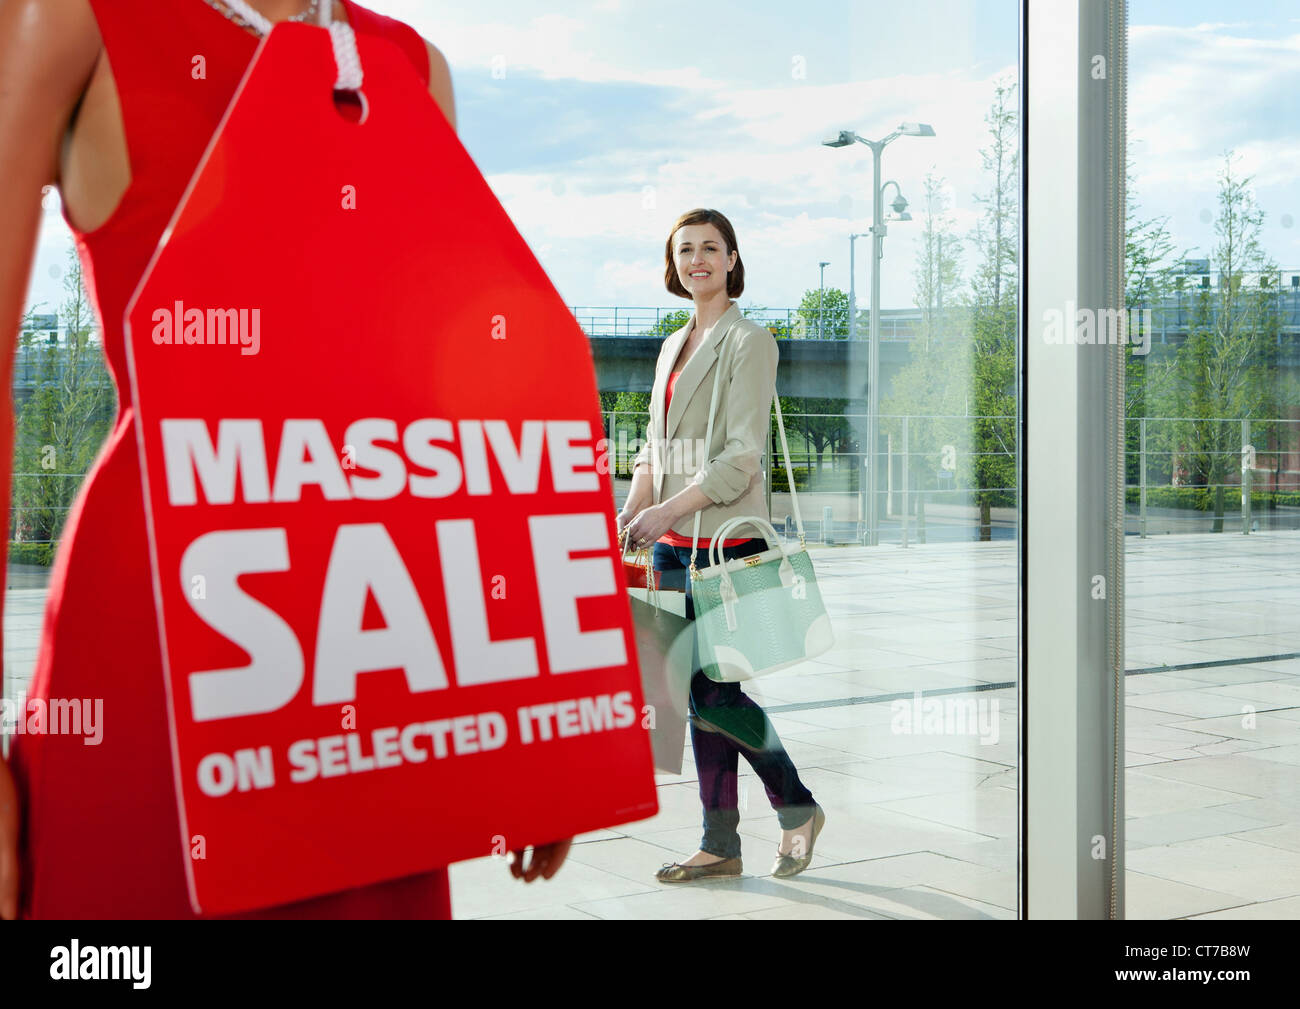 Woman looking at sale sign in shop window Photo Stock